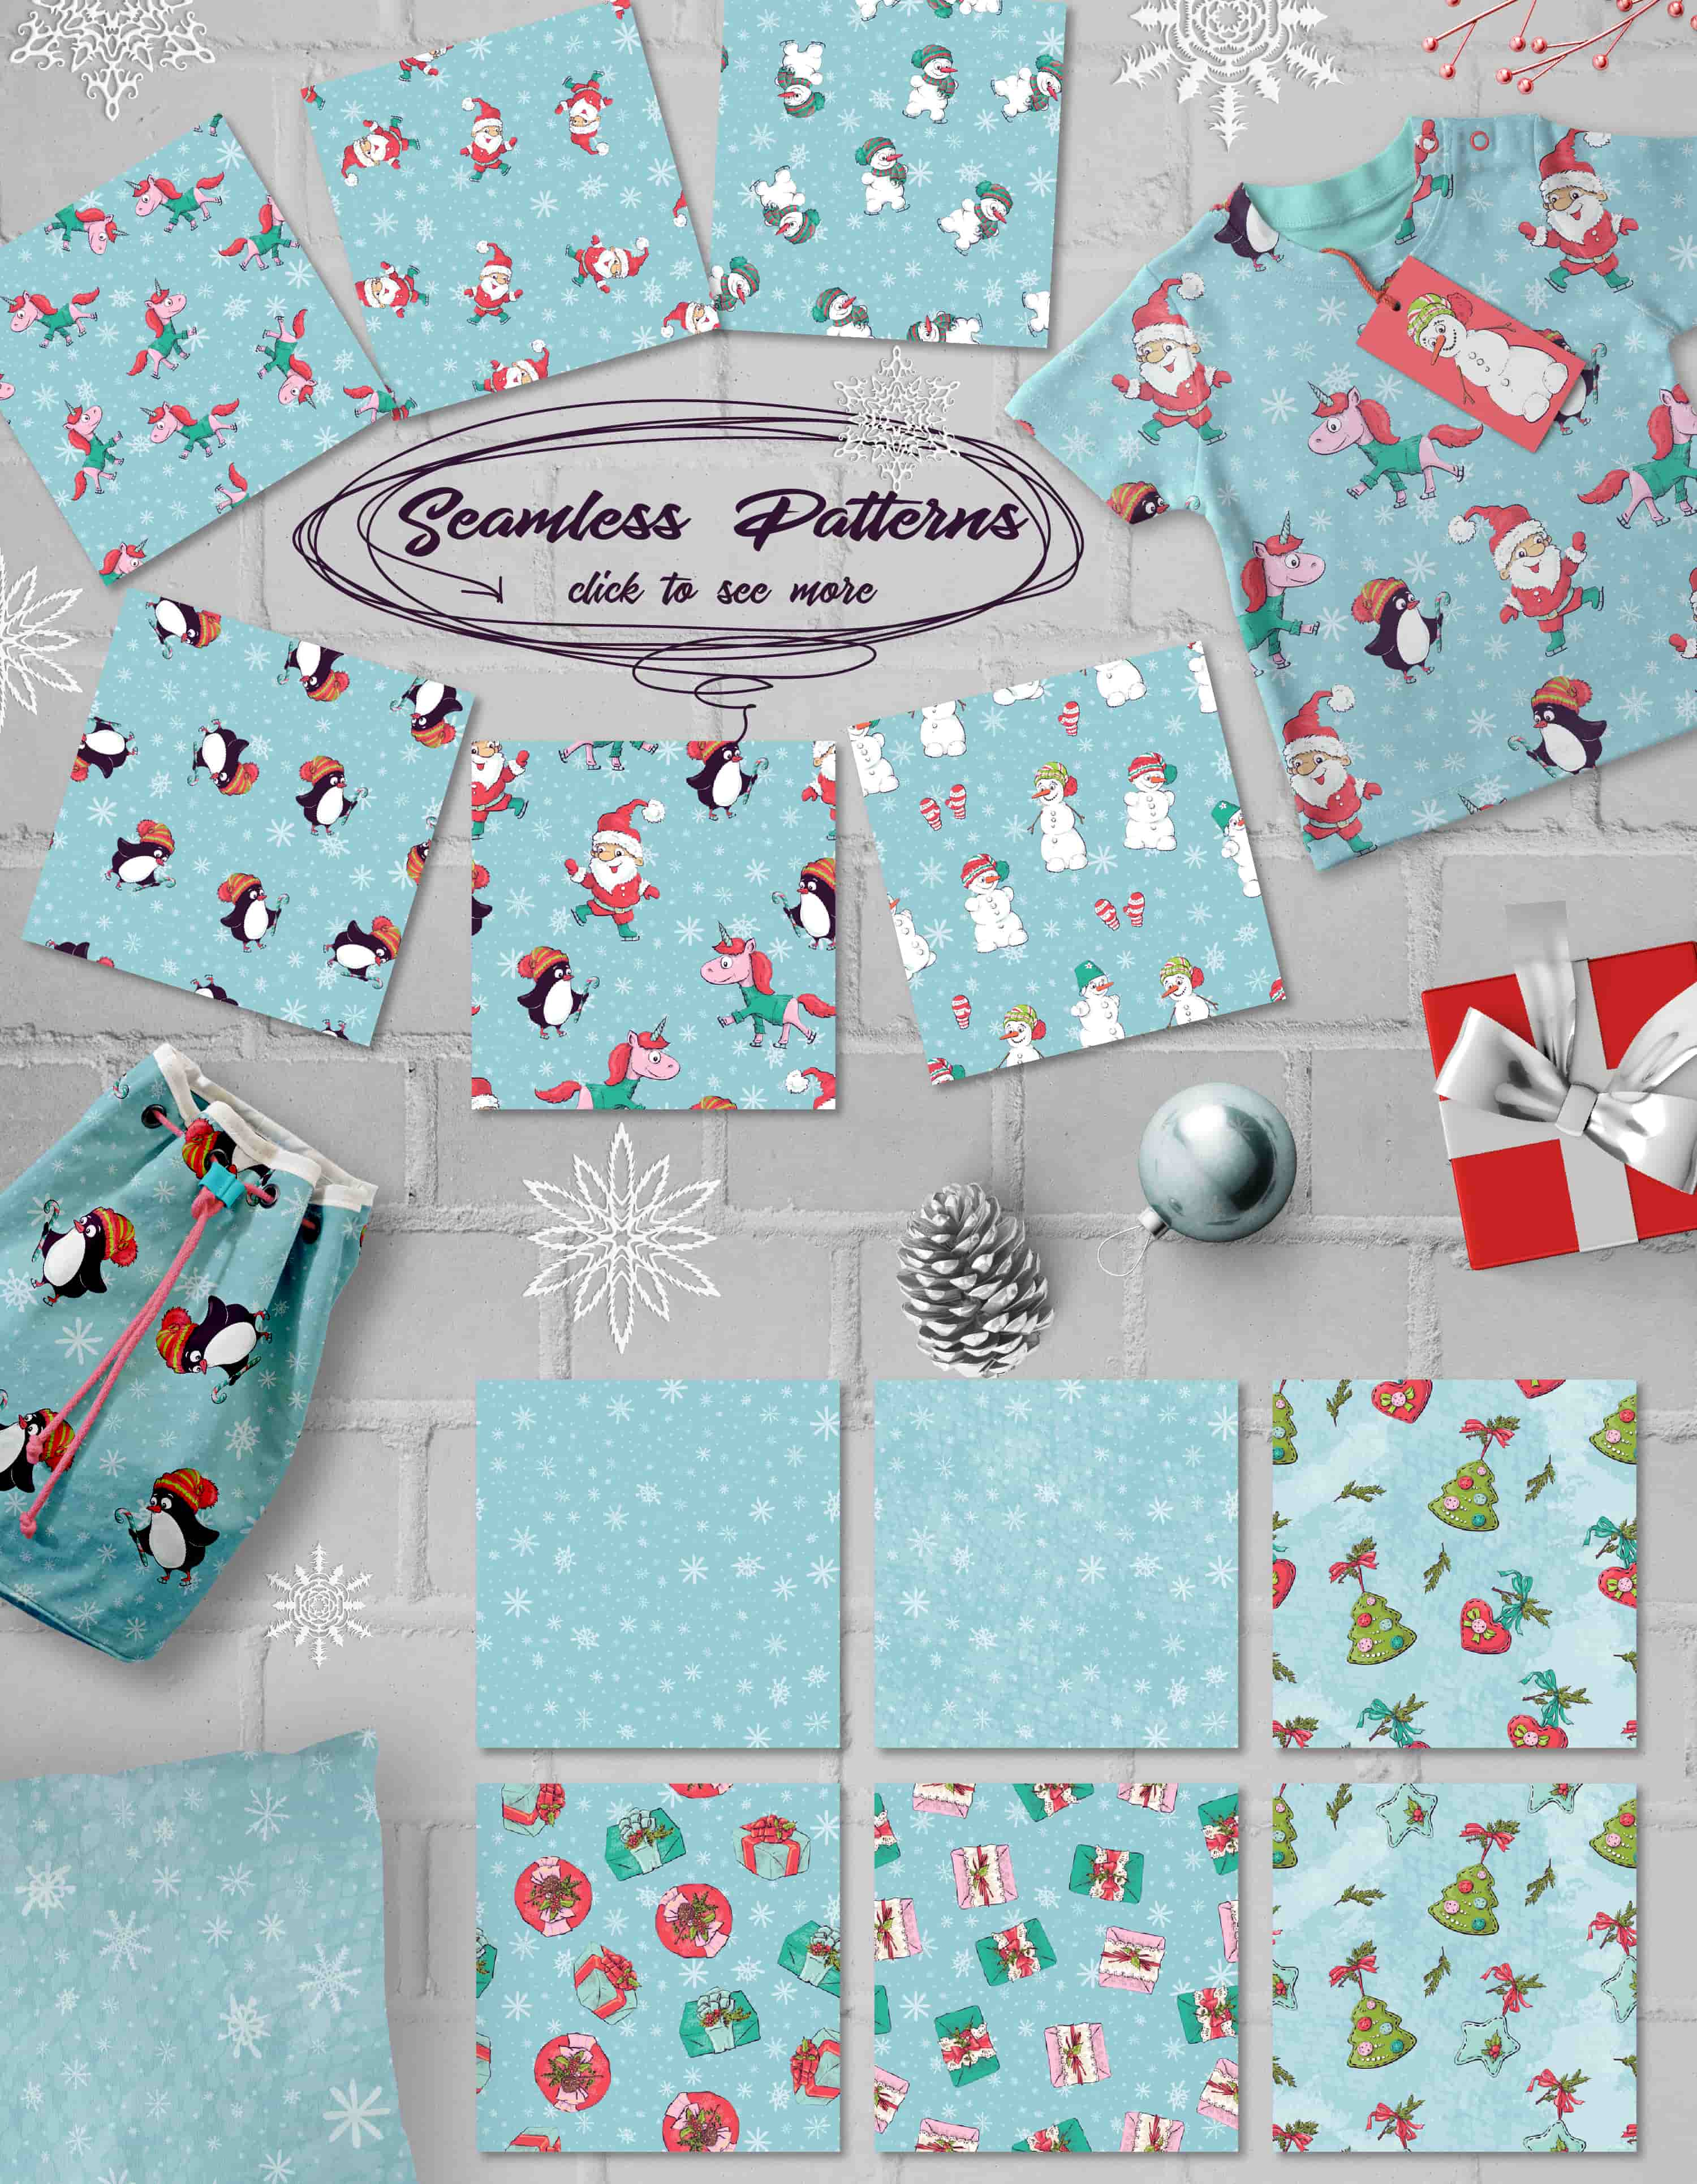 Merry Christmas Images: patterns, cards and items - 8 patterns min